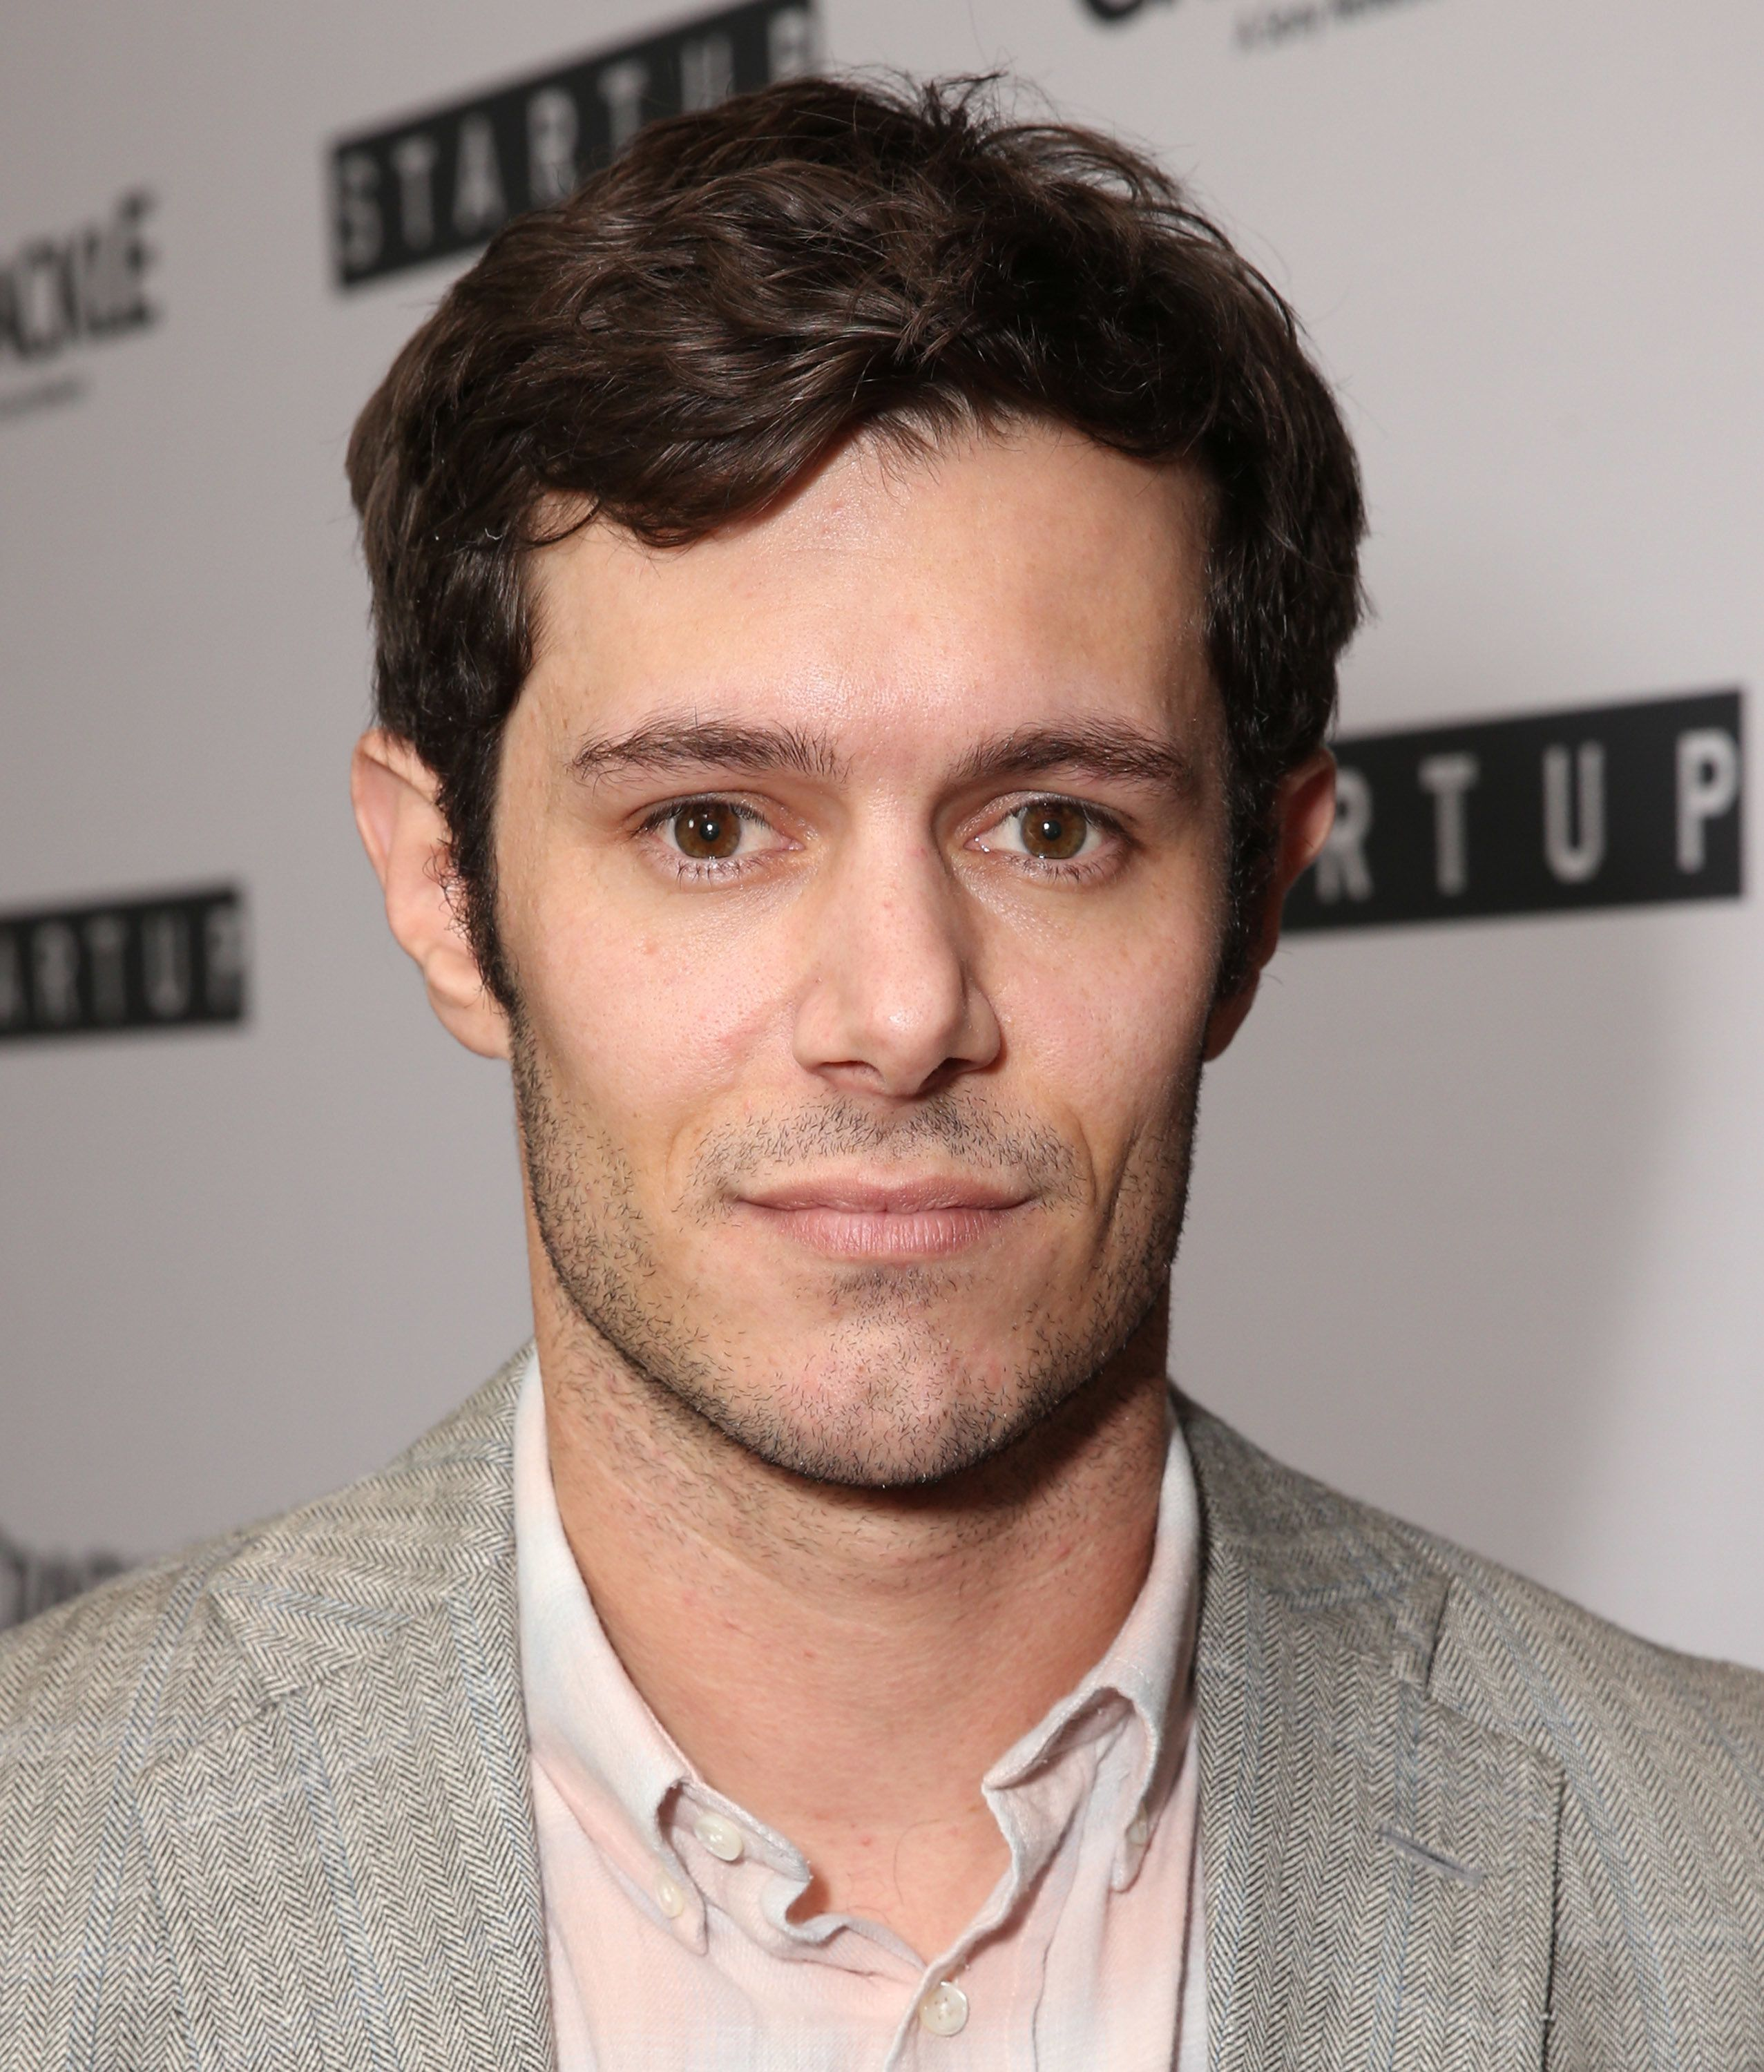 WEST HOLLYWOOD, CA - AUGUST 23:  Adam Brody attends the Premiere Of Crackle's 'Startup'  at The London Hotel on August 23, 2016 in West Hollywood, California.  (Photo by Todd Williamson/Getty Images)